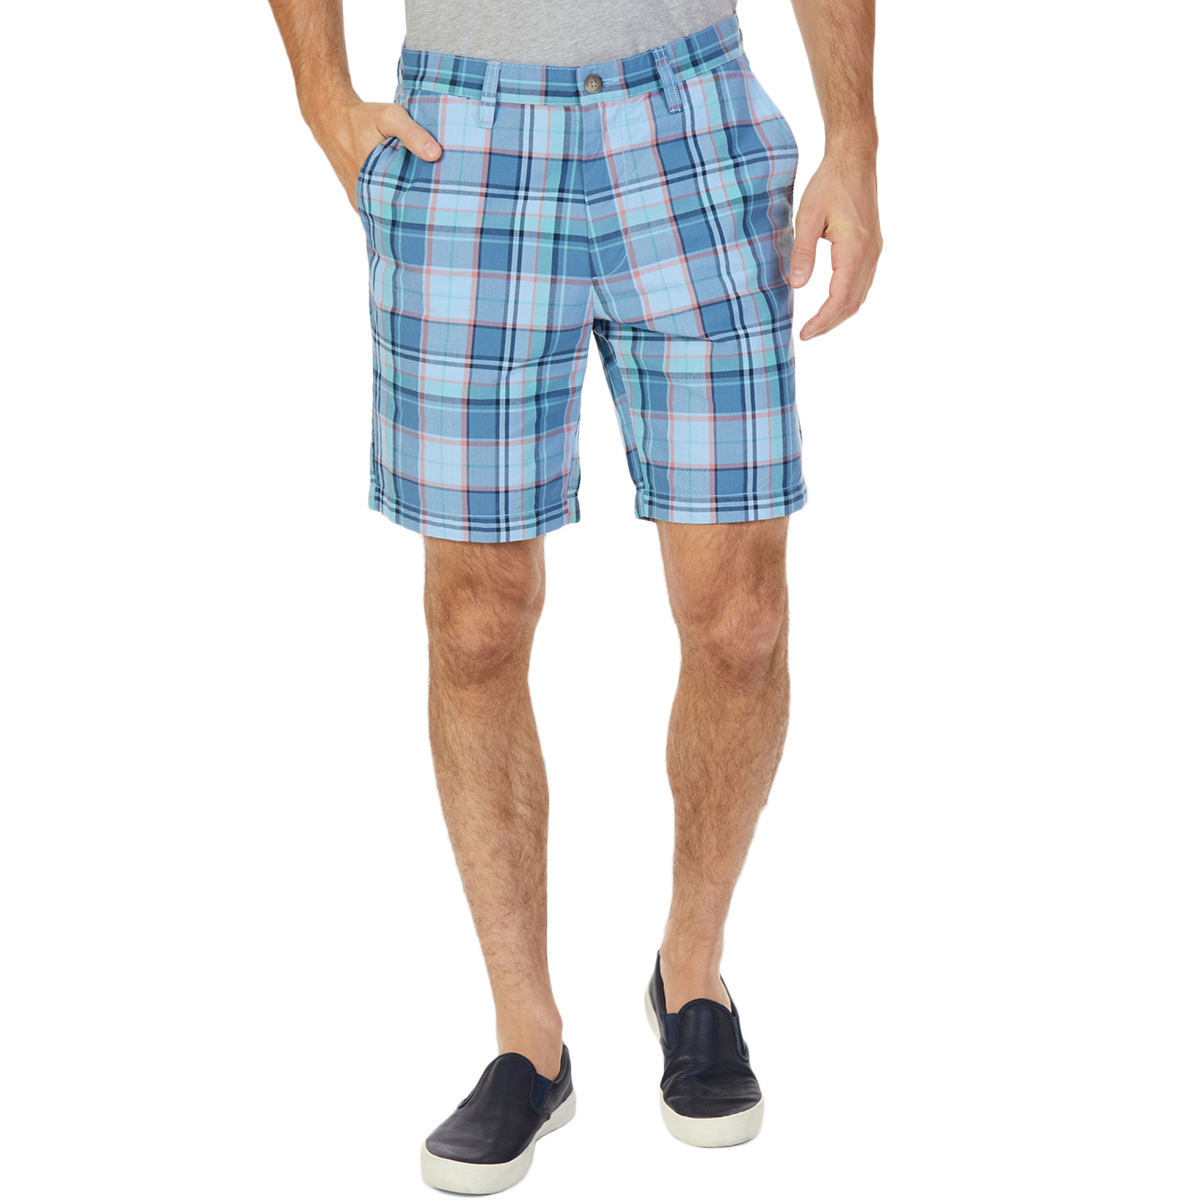 Nautica Men's Roadmap Plaid Classic Fit Walking Shorts - Blue, 42